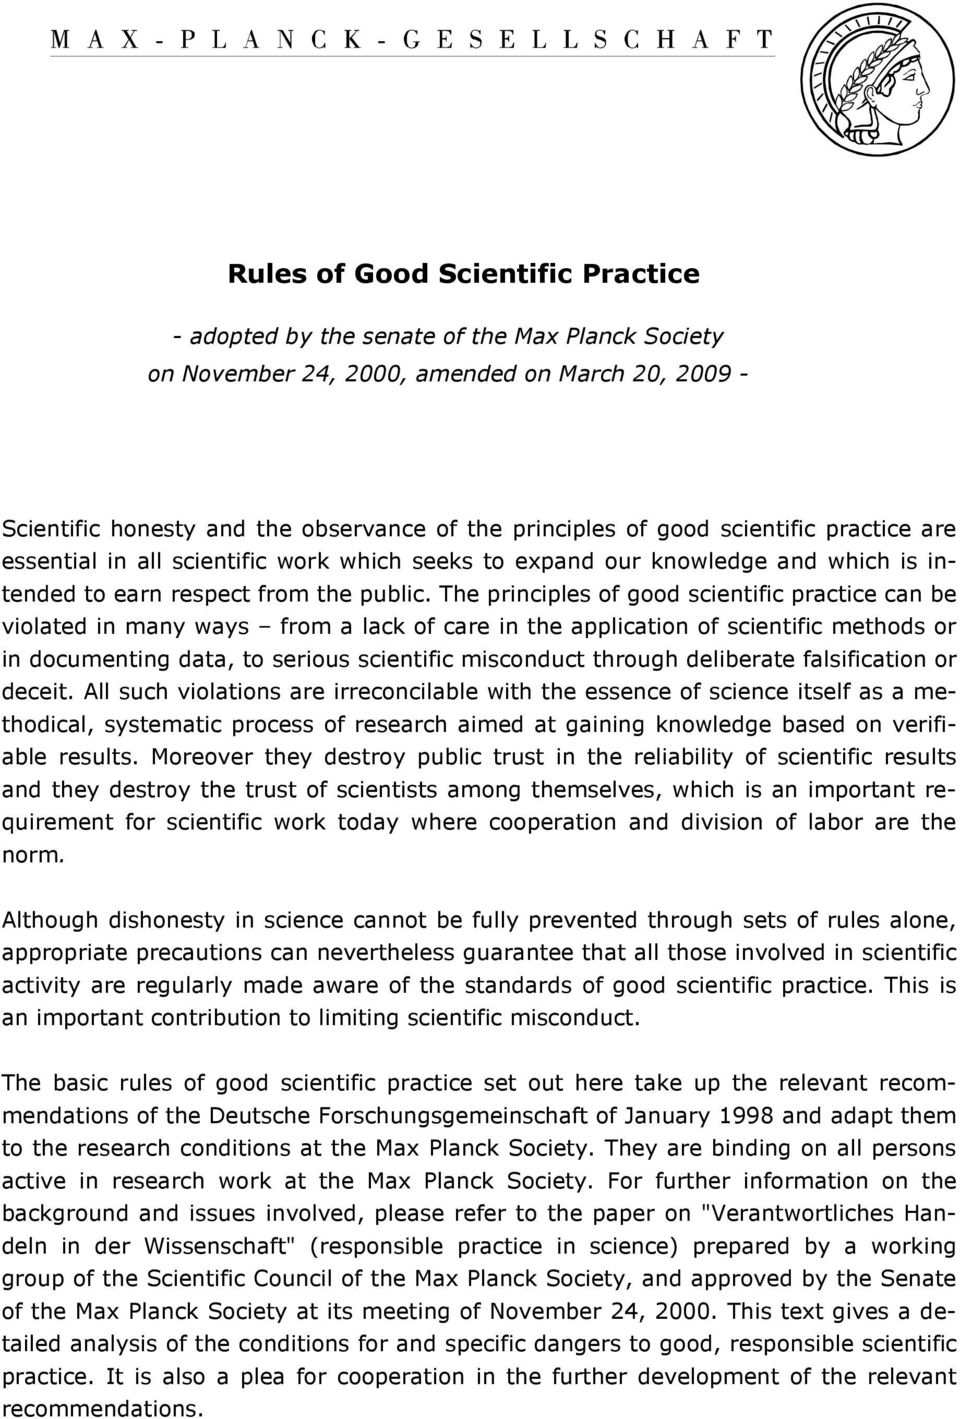 The principles of good scientific practice can be violated in many ways from a lack of care in the application of scientific methods or in documenting data, to serious scientific misconduct through